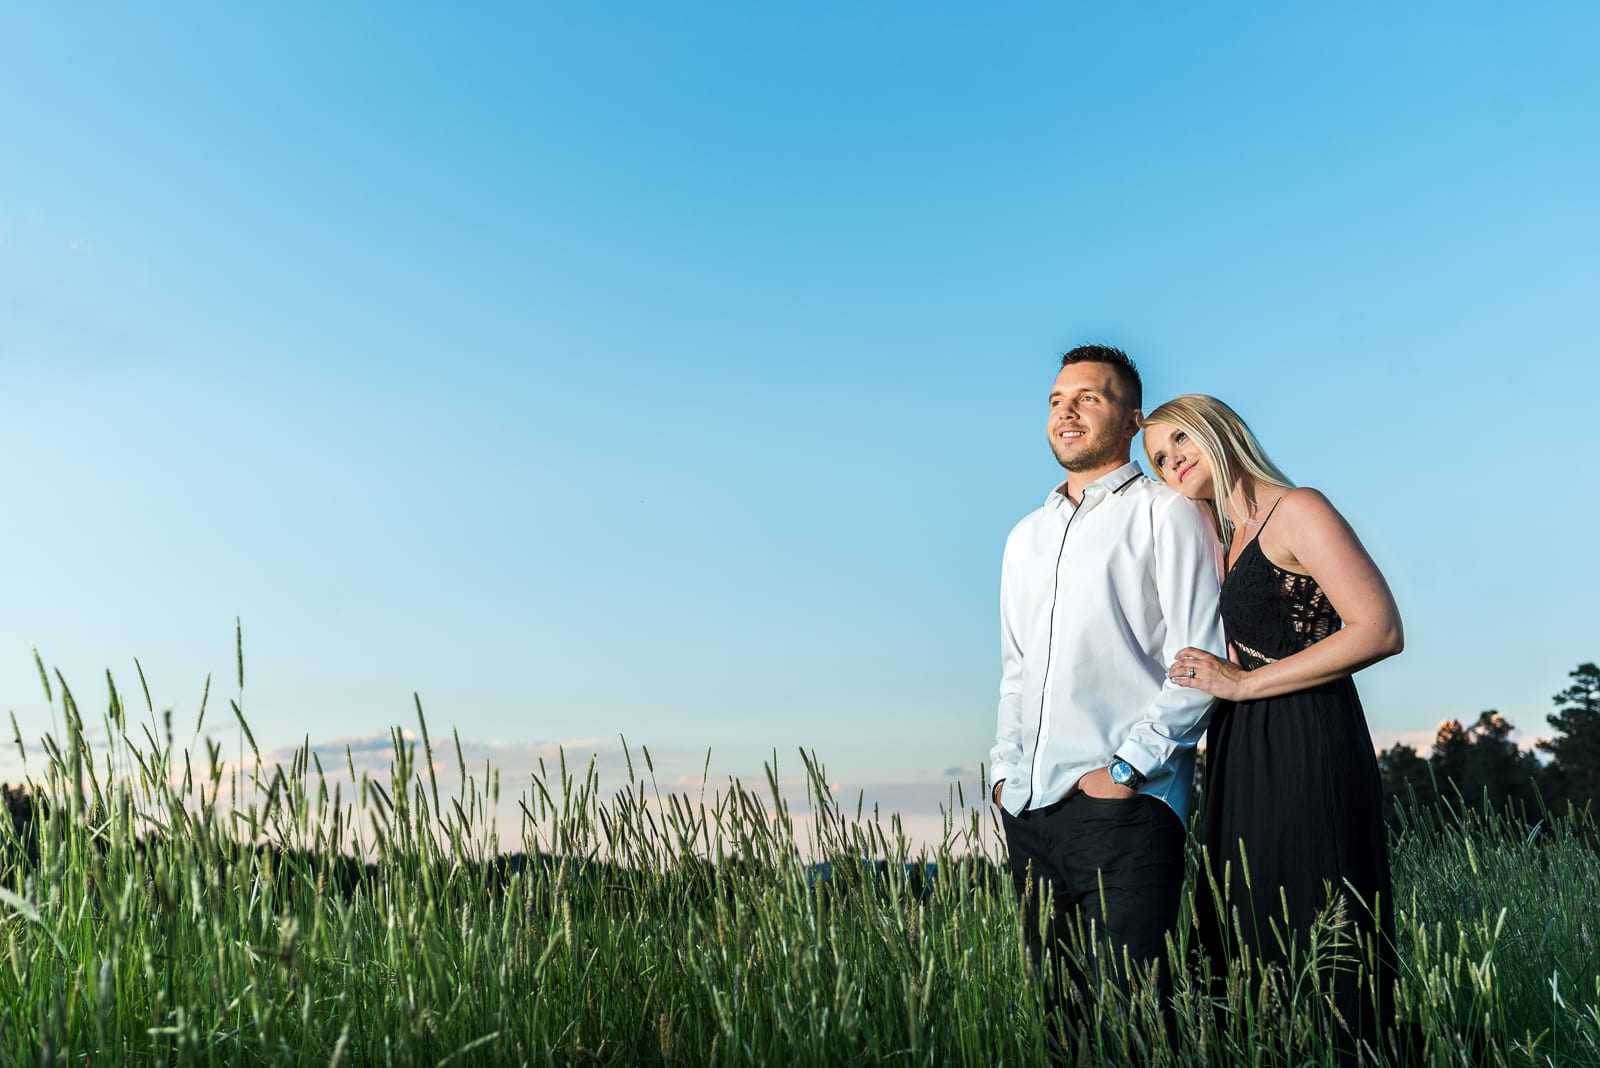 A Galactic Engagement | Engagement | Alderfer Park | From the Hip Photo